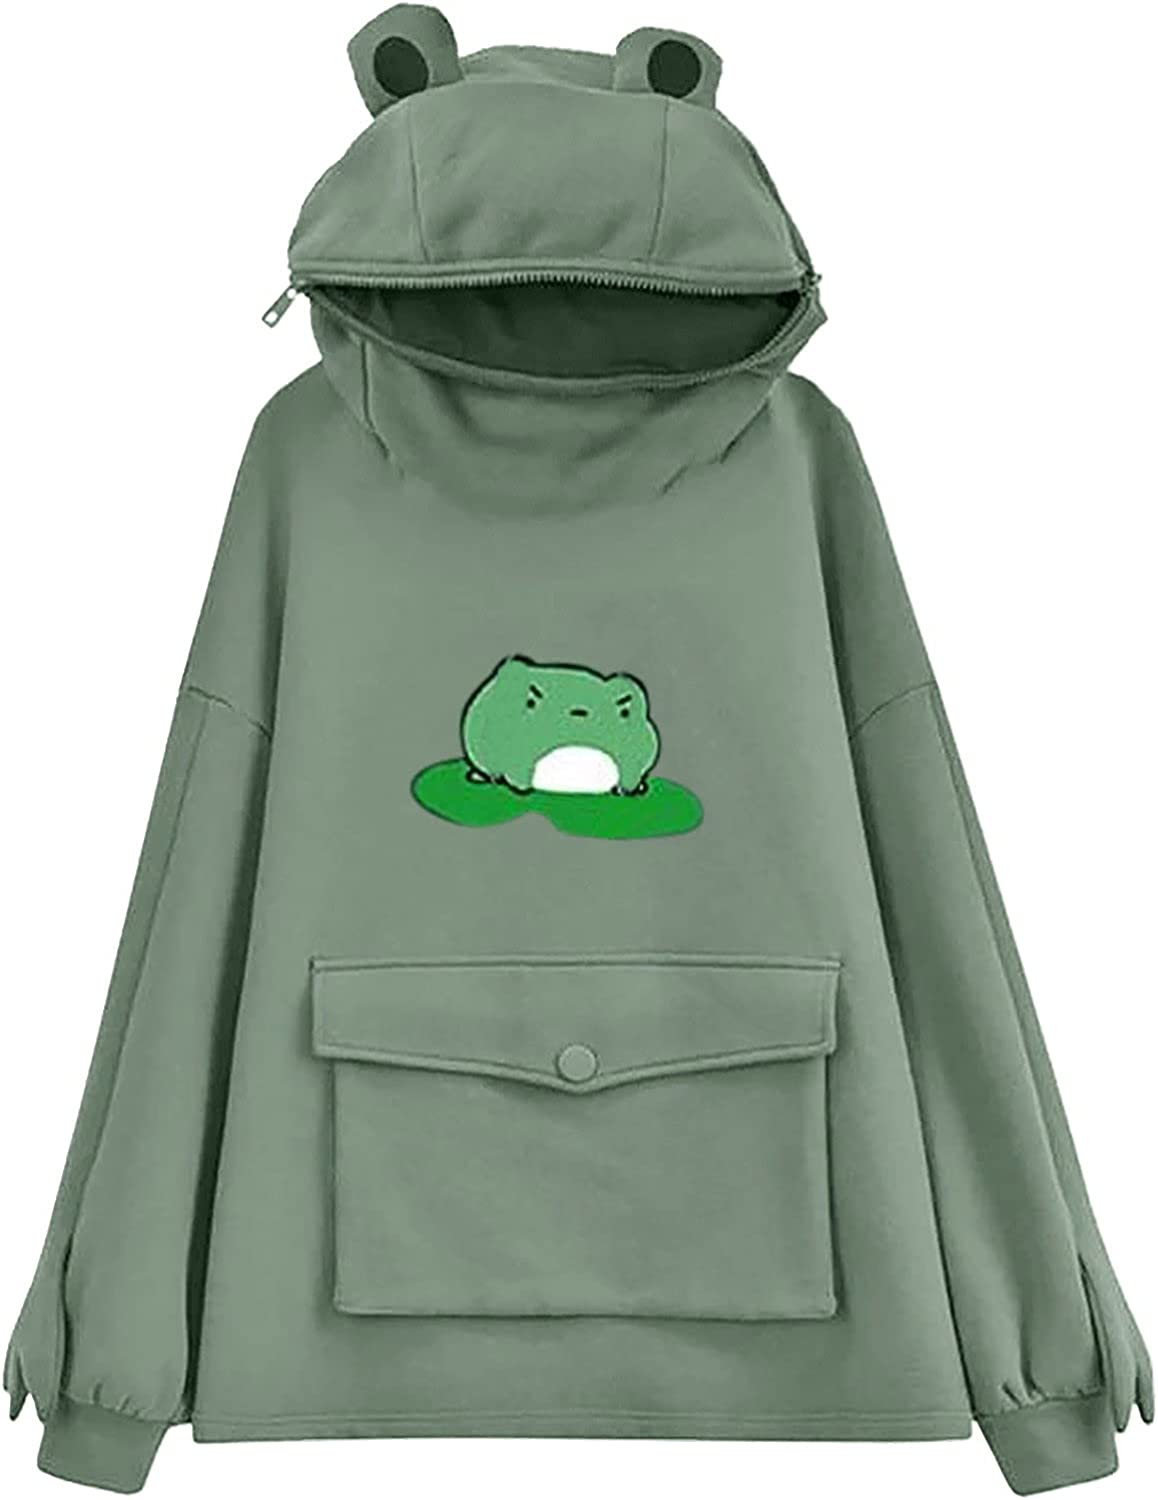 UOCUFY Sweatshirts for Women, Womens Fall Drawstring Hoodies with Pockets Pullover Hoodies Frog Hooded Sweatshirts Tops